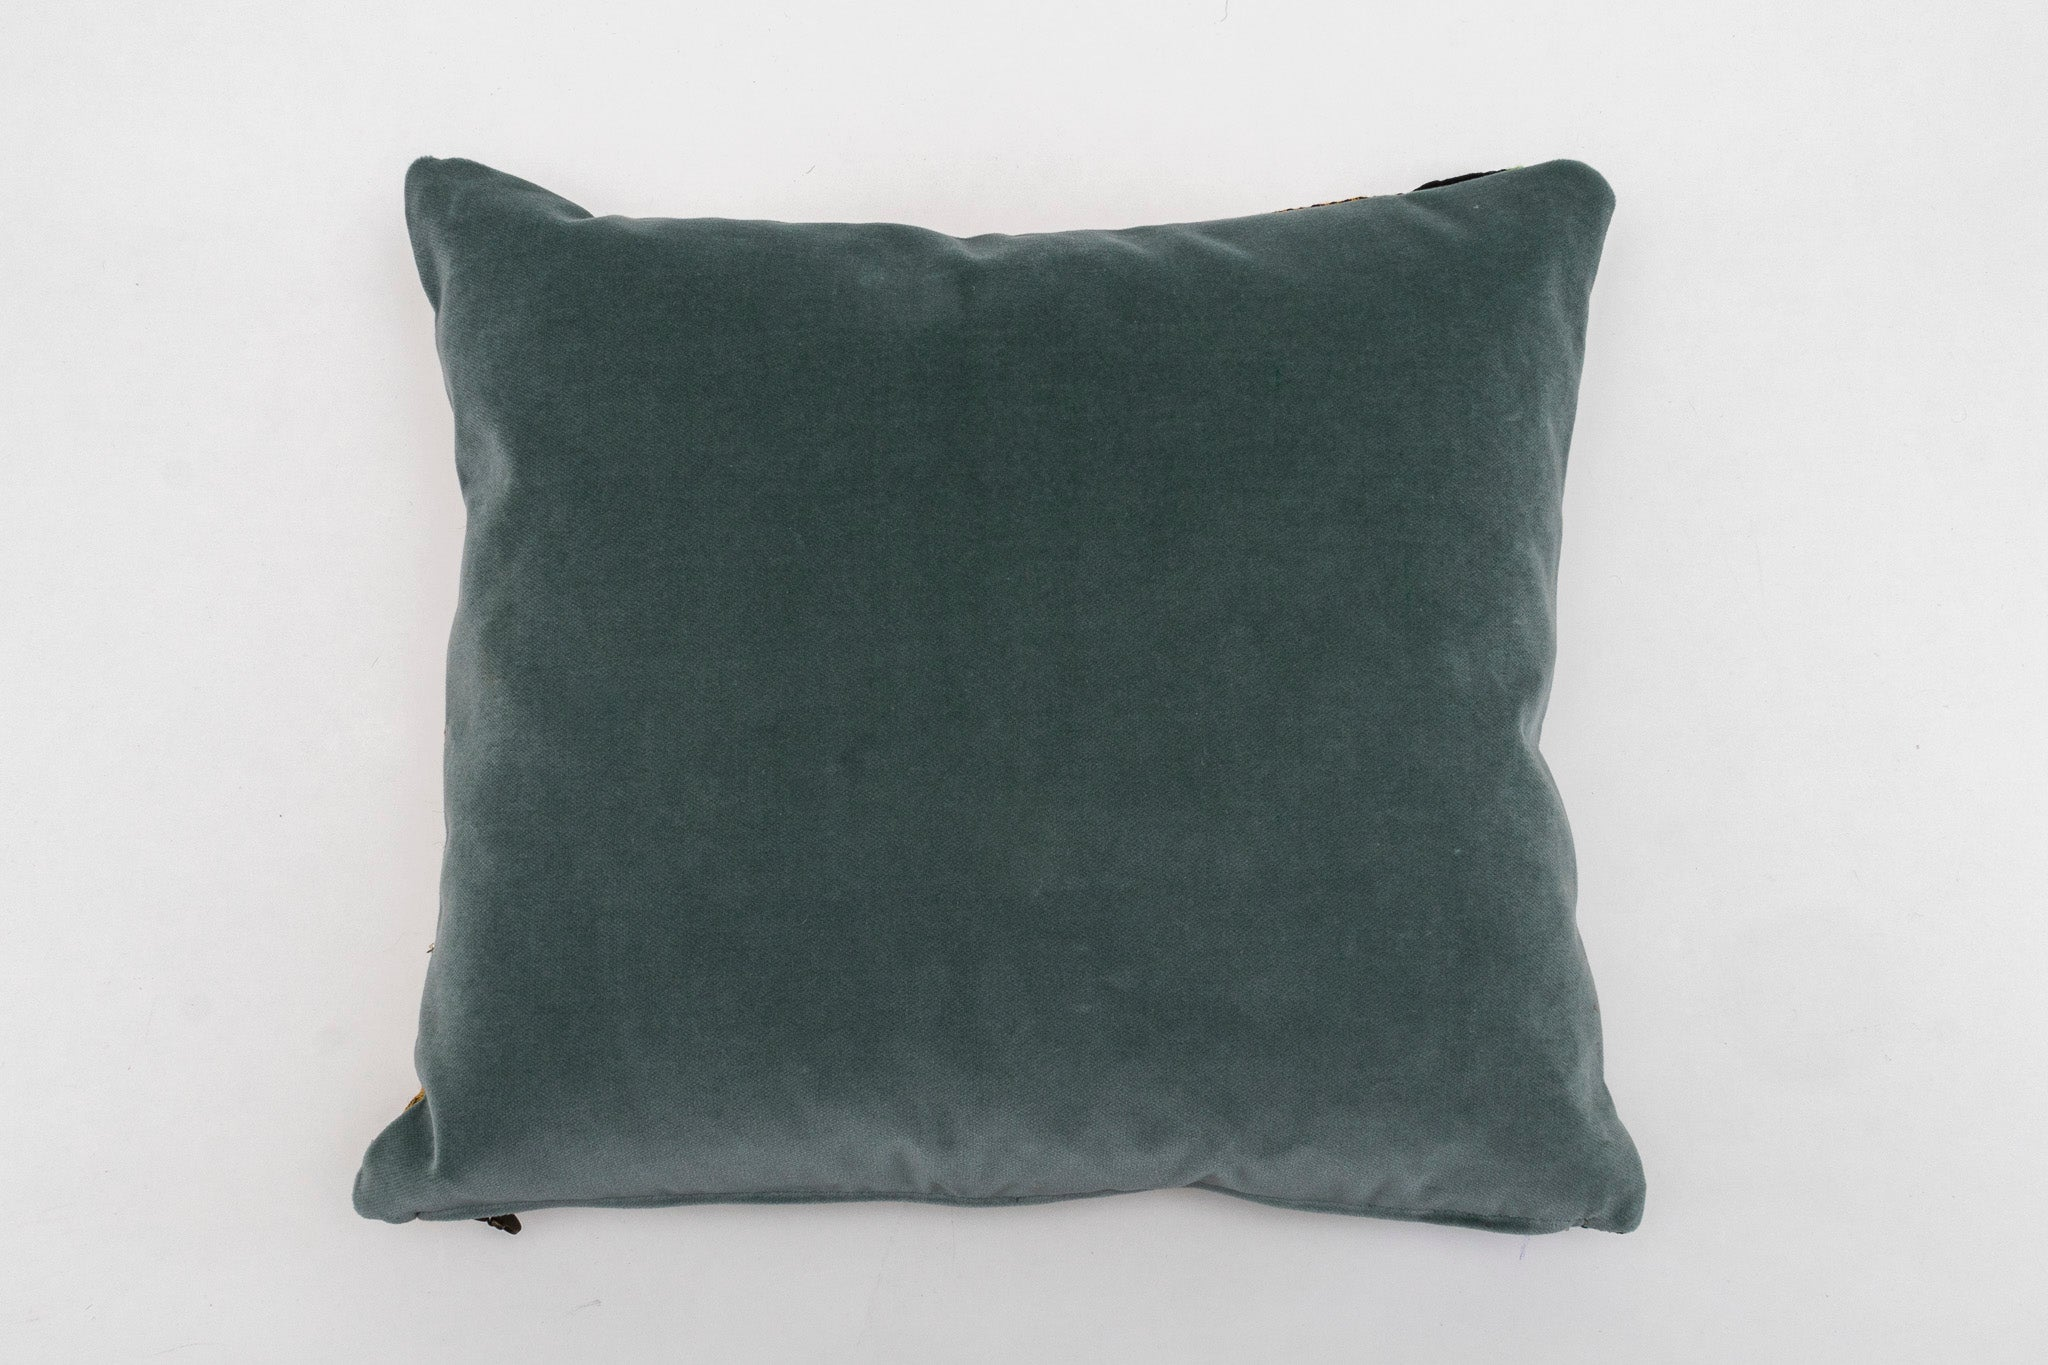 Pillow: Handwoven and adorned antique Romanian wool